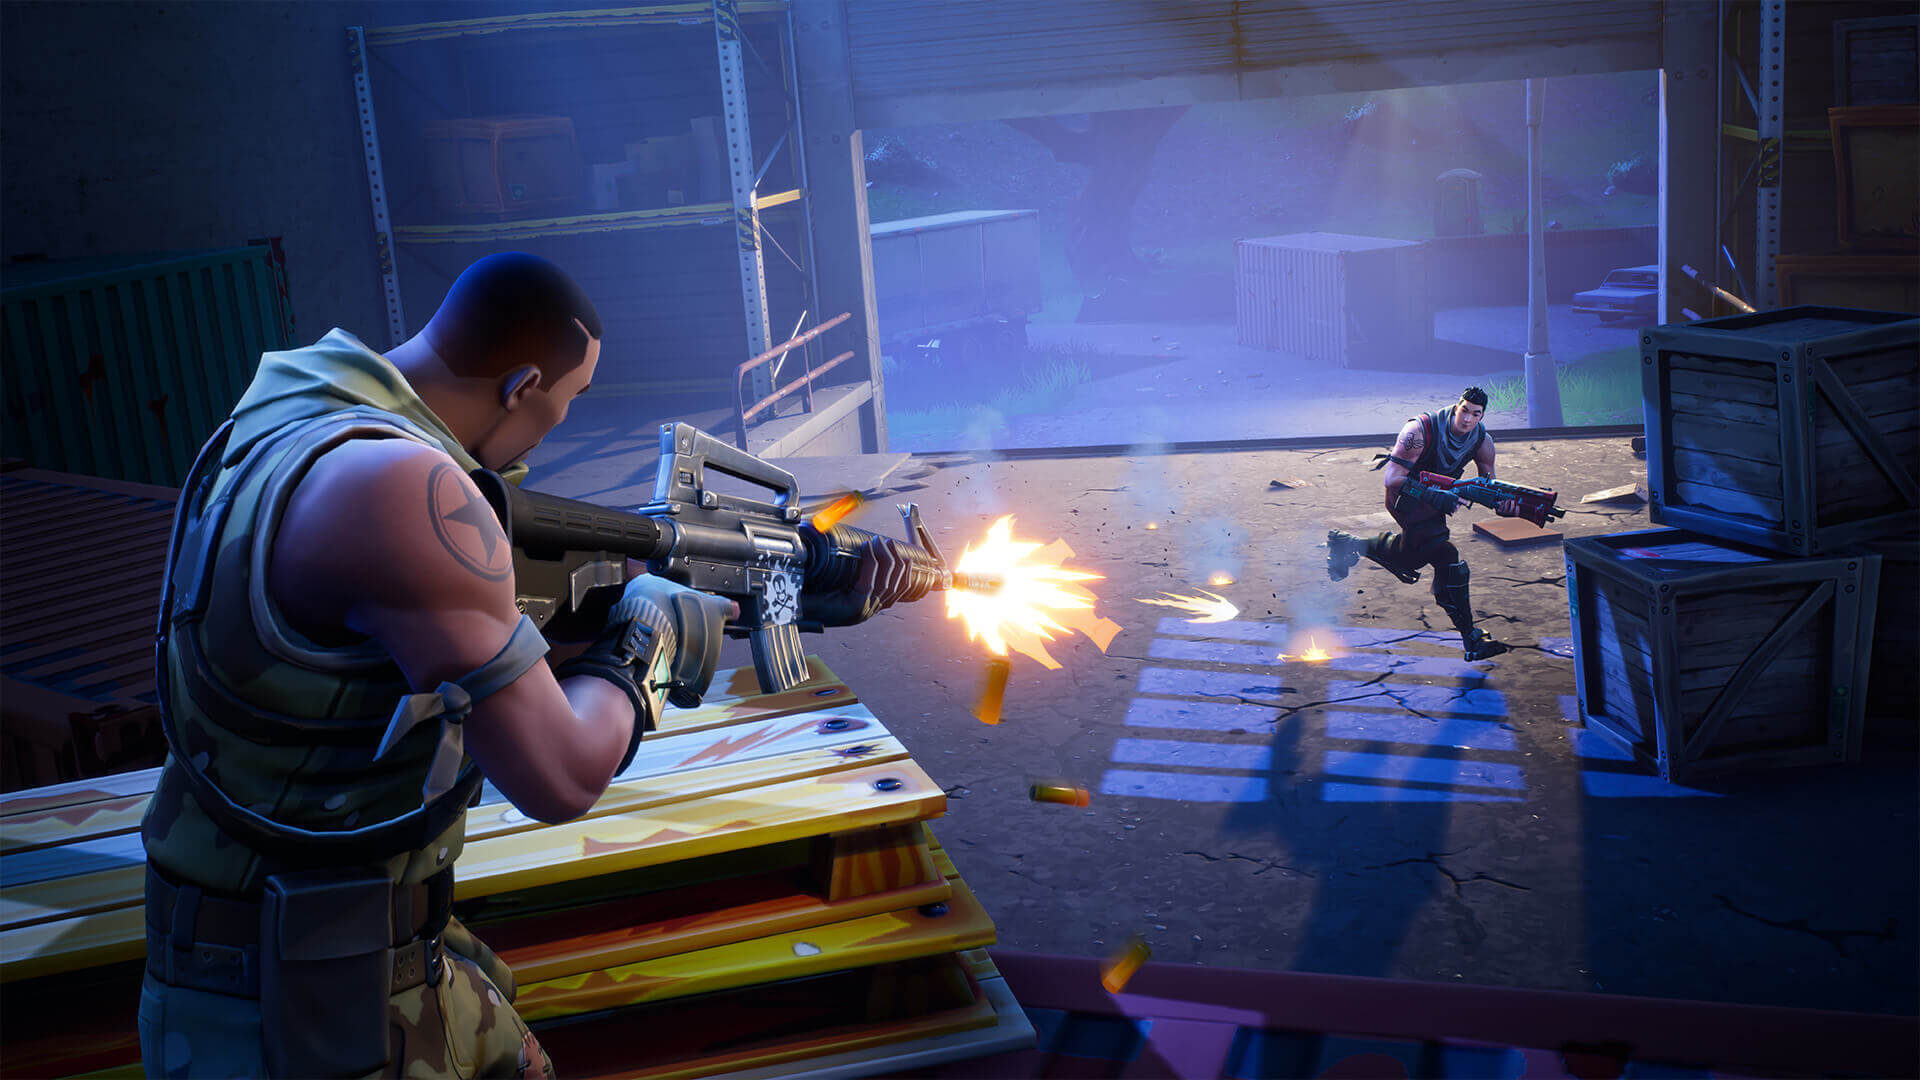 Leaks suggest Fortnite is heading to the Nintendo Switch